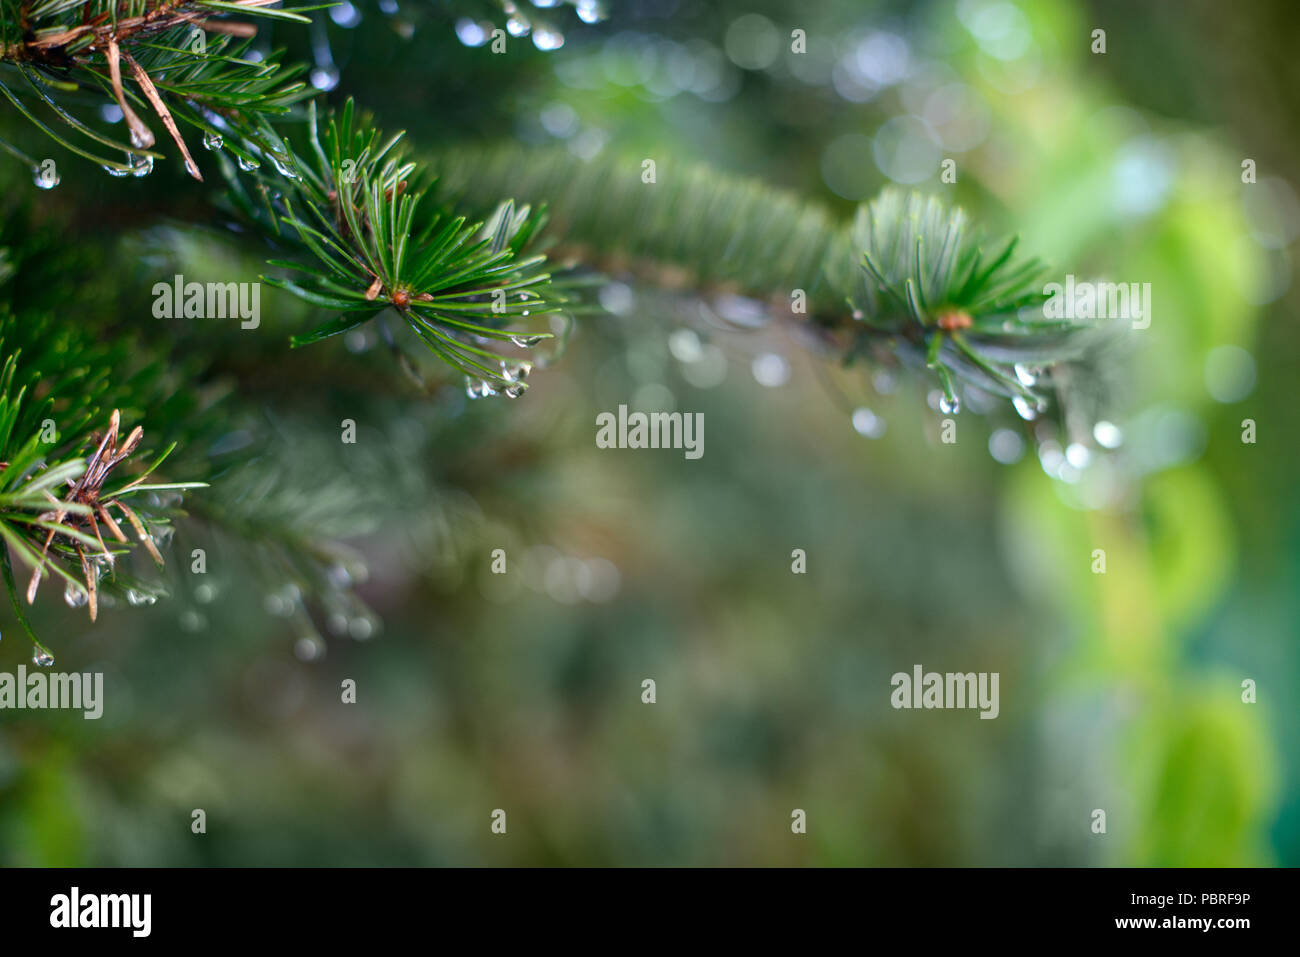 Spruce branch with drops of dew, close up background - Stock Image